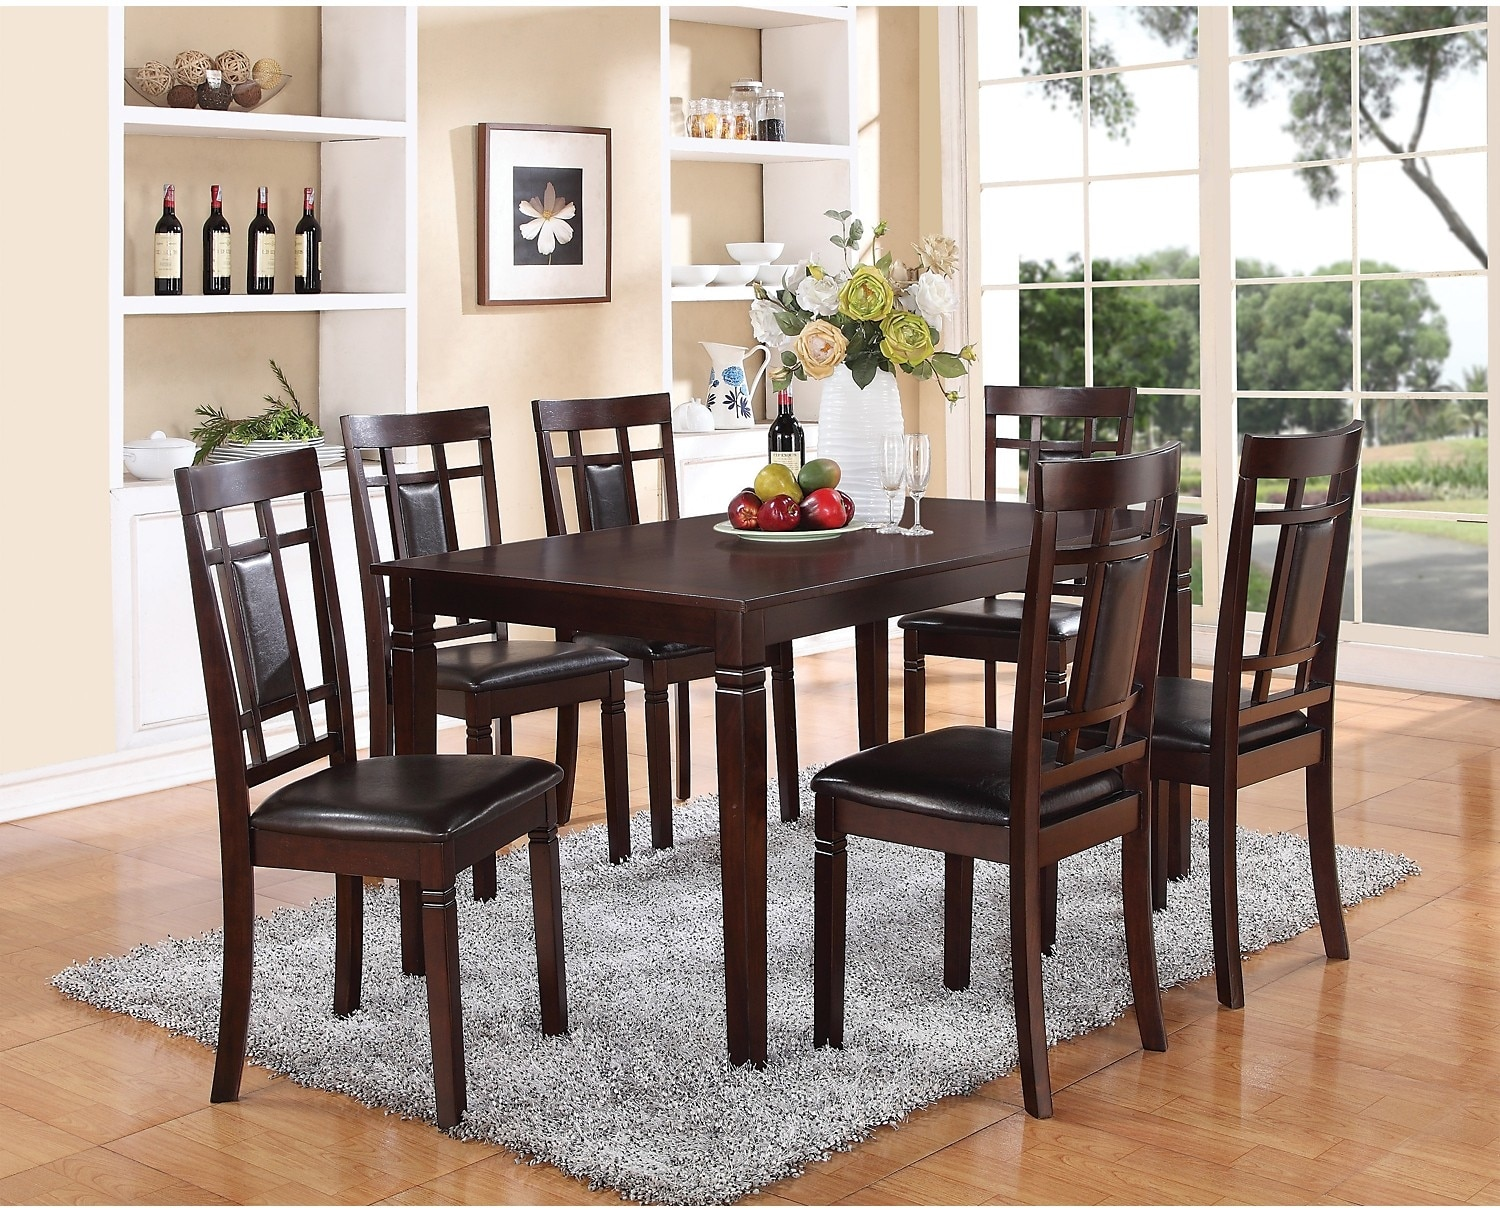 The Brick Dining Room Sets Aran 5 Piece Casual Dining Package The Brick